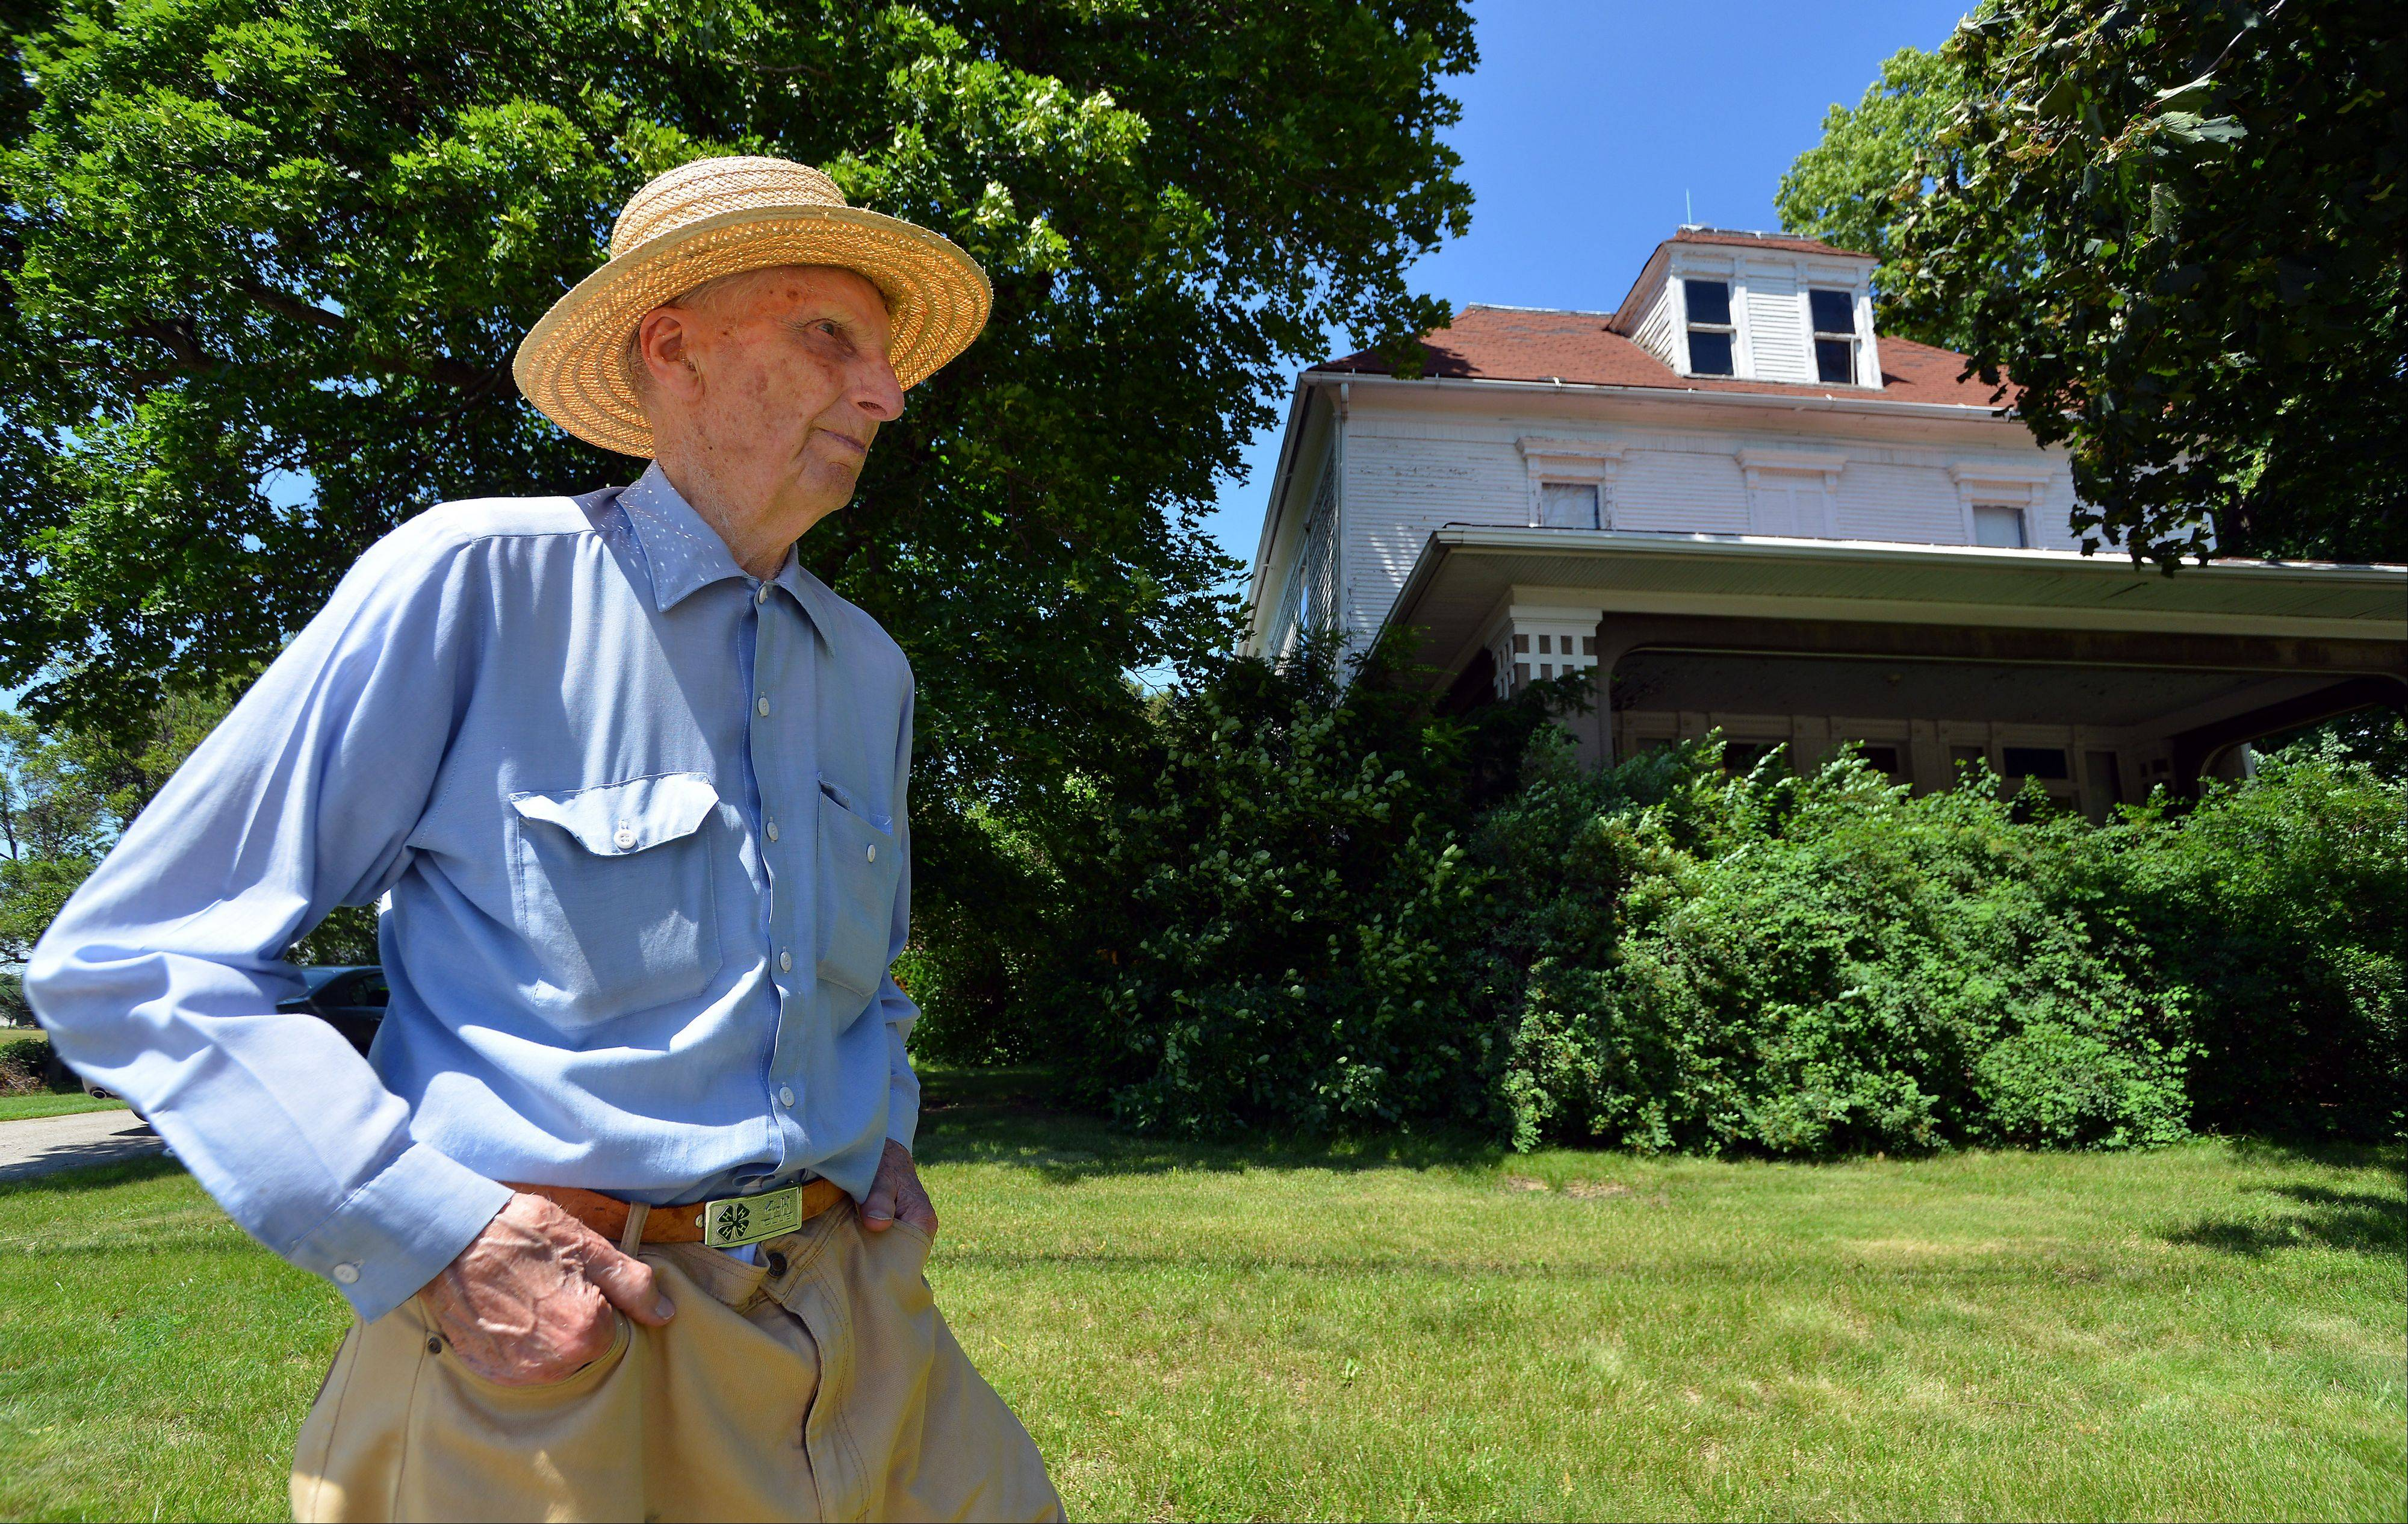 Hoffman Estates lauds Cook County's oldest farmer